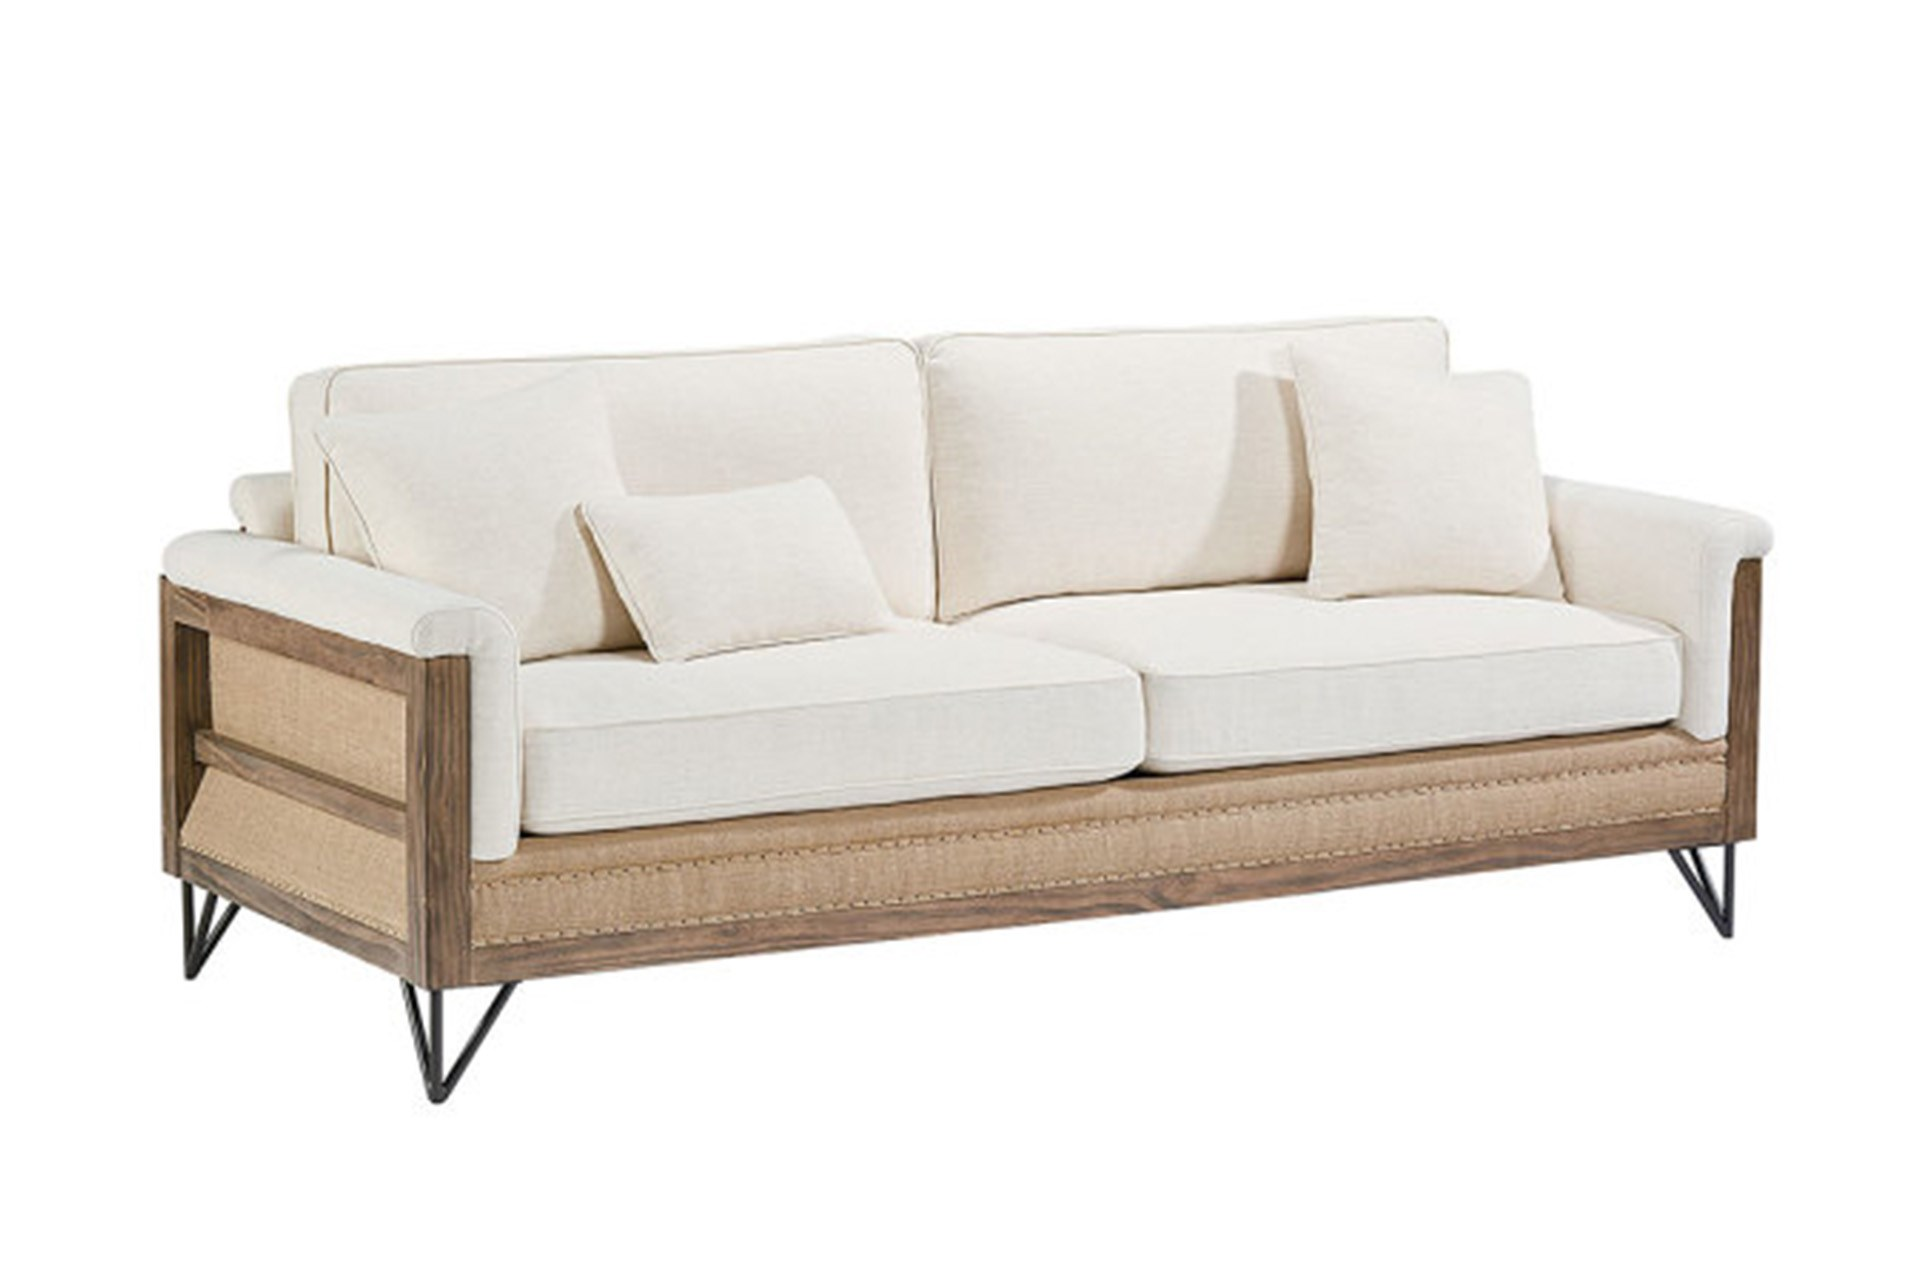 Magnolia Home Paradigm Sofa By Joanna Gaines Qty 1 Has Been Successfully Added To Your Cart